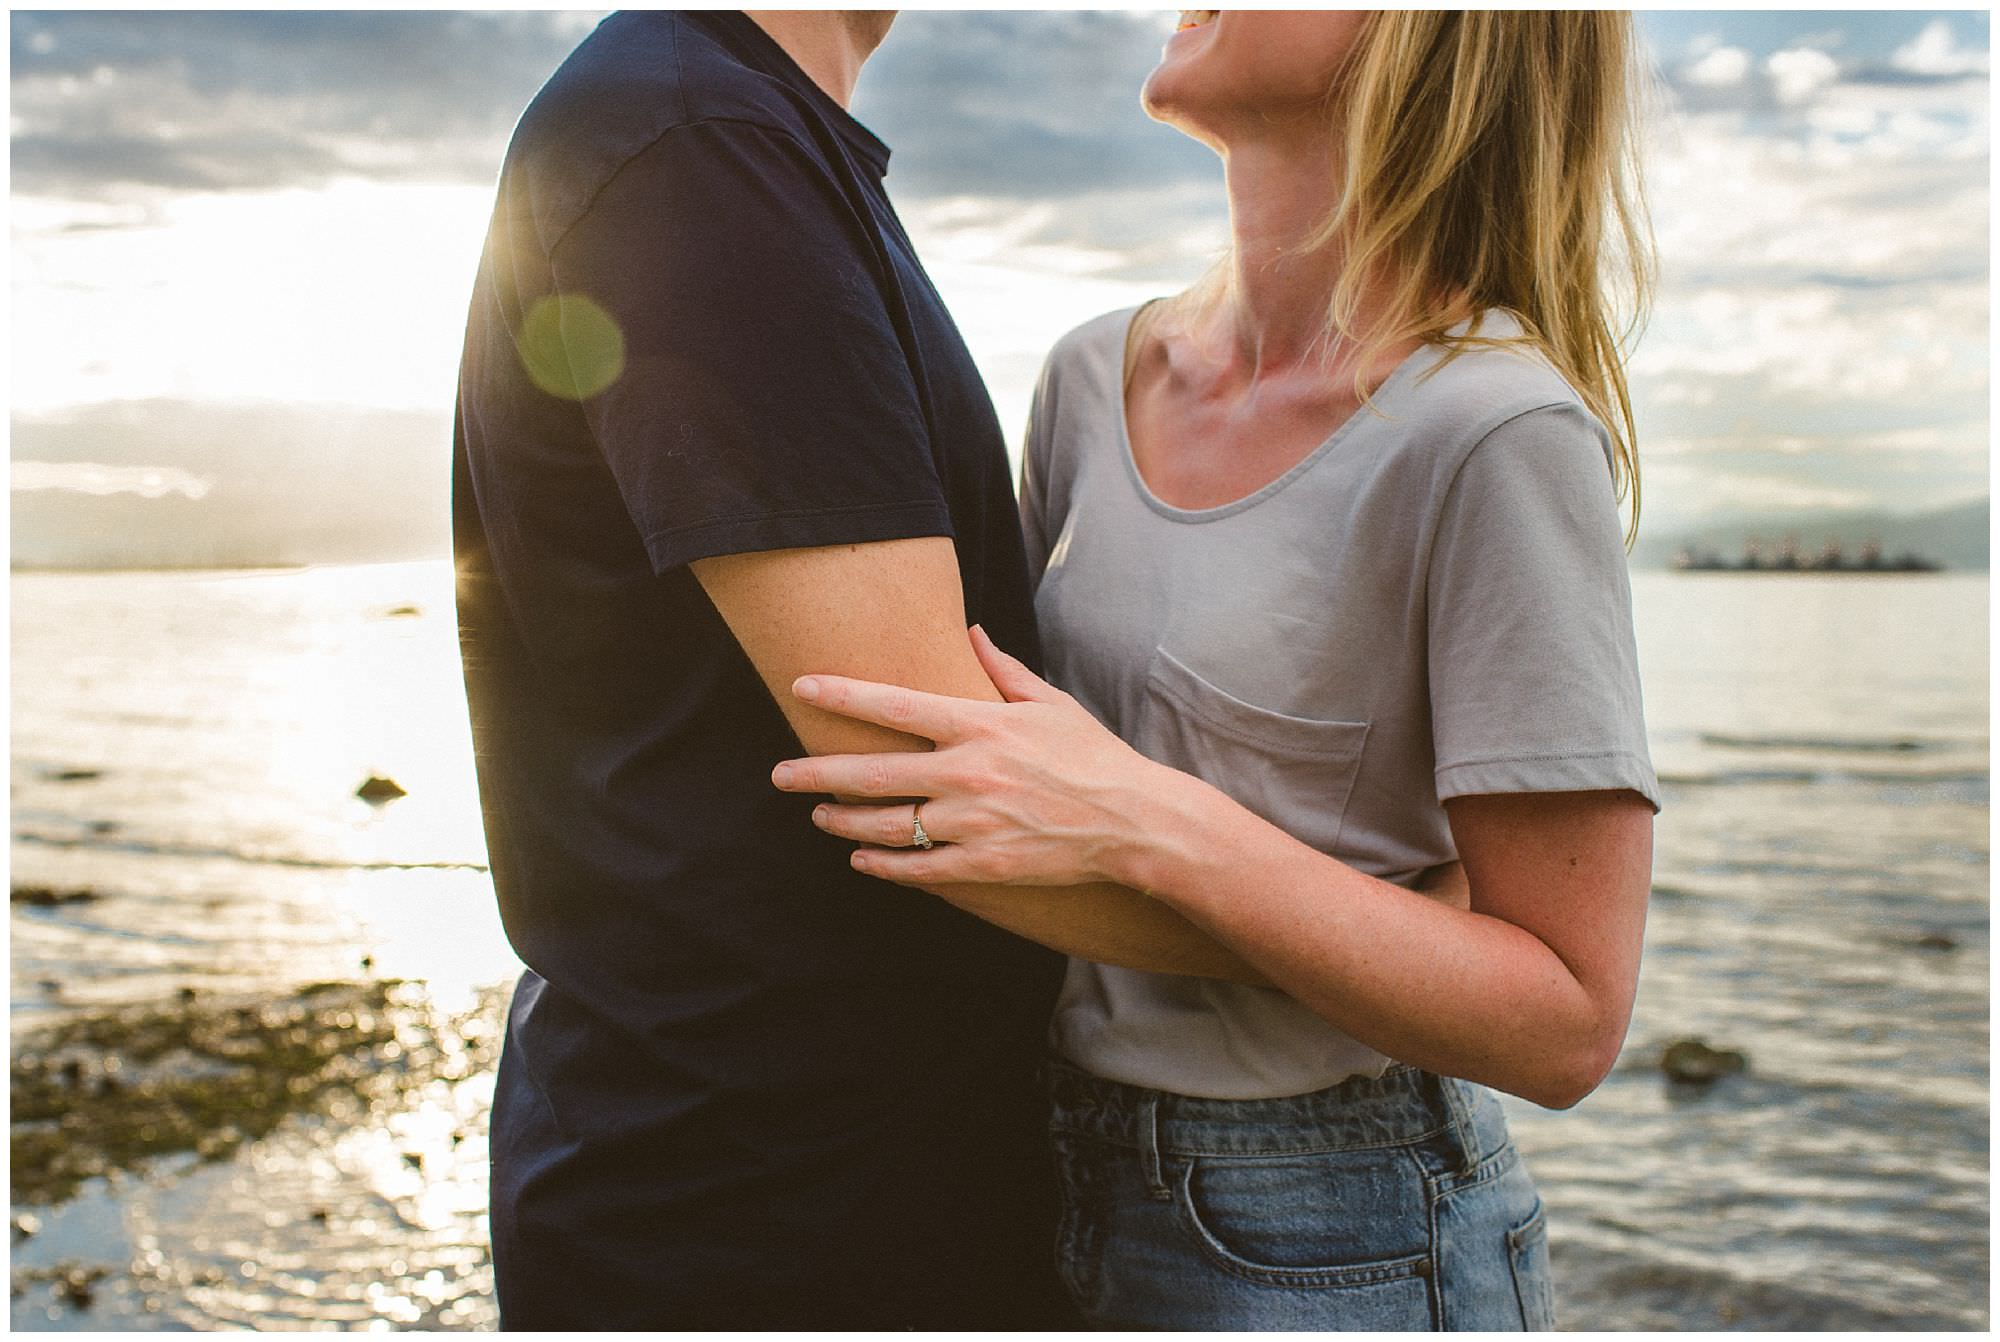 Sunset engagement session at Jericho beach, couple touching, candid moment with couple